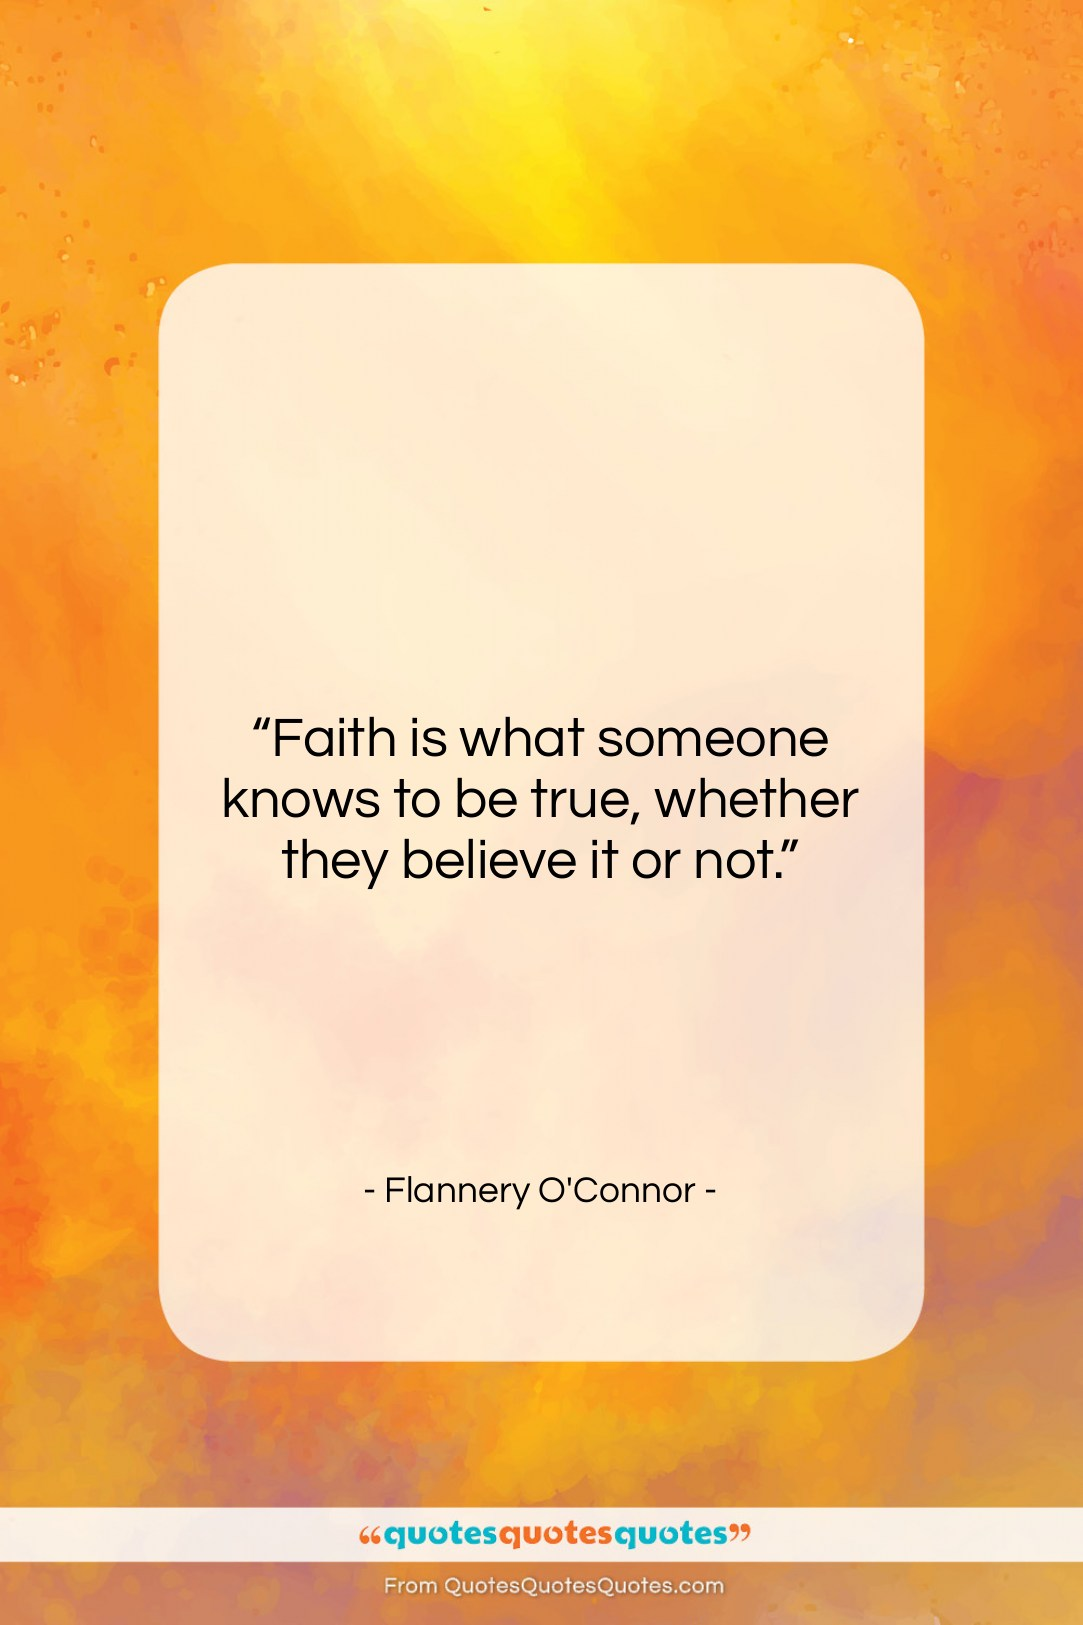 """Flannery O'Connor quote: """"Faith is what someone knows to be…""""- at QuotesQuotesQuotes.com"""